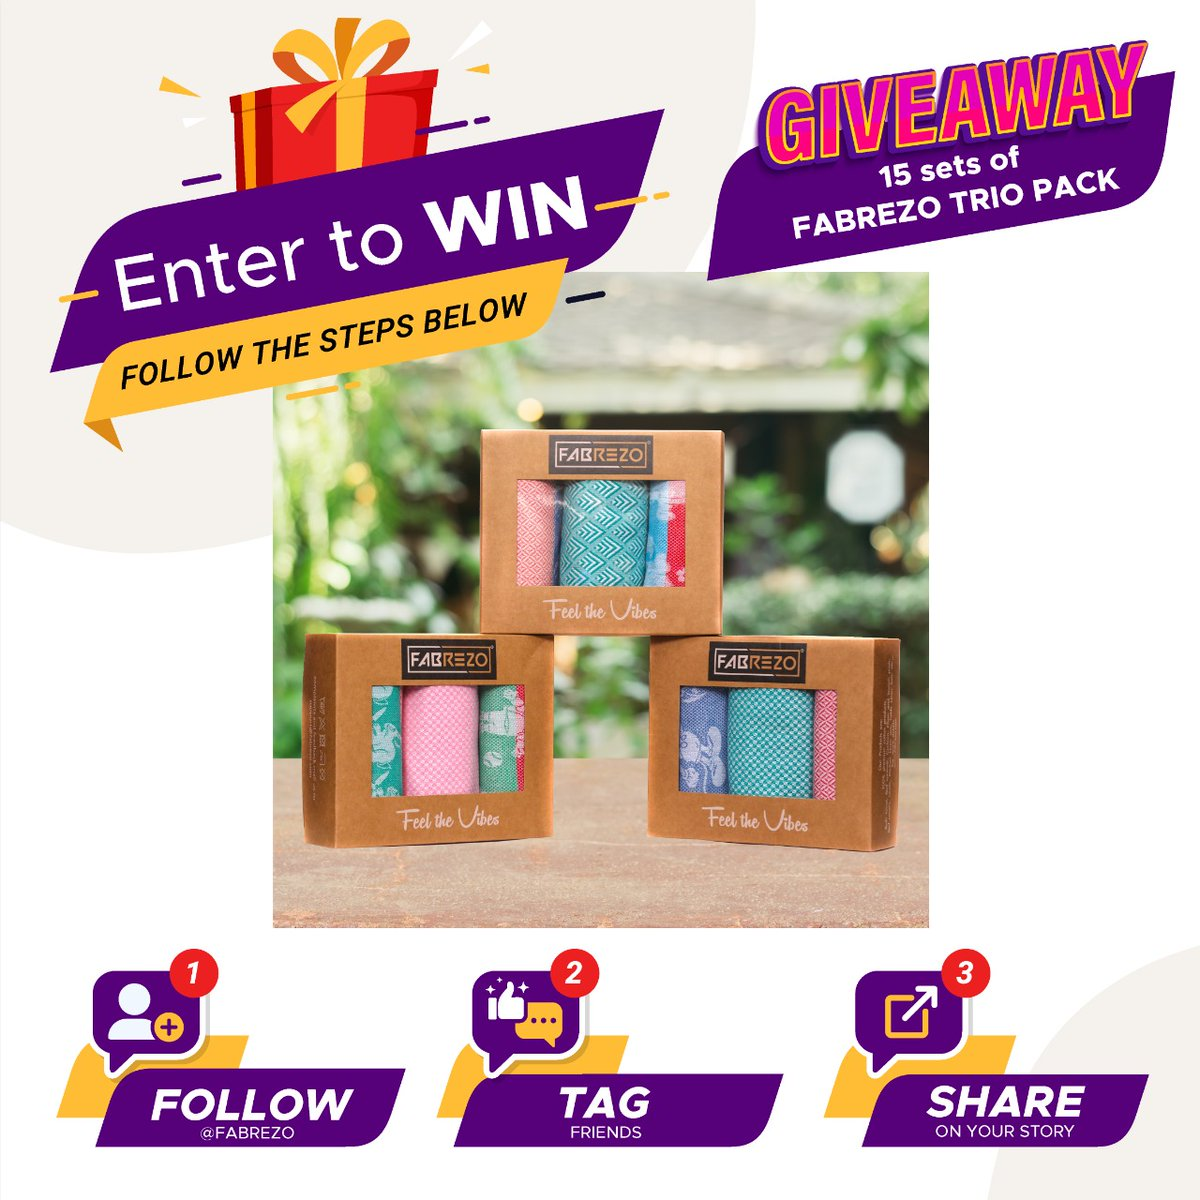 GIVEAWAY CONTEST ALERT !!! Fabrezo is giving away 15 sets of Bath Towel TRIO PACK. Follow the rules below and stand a chance to win this Giveaway  #giveaway #GiveawayAlert #Giveaways #fabrezo #win #HappyPongal #HappySankranti #royalehighgiveaways #vishwamukhaa_trader #competition